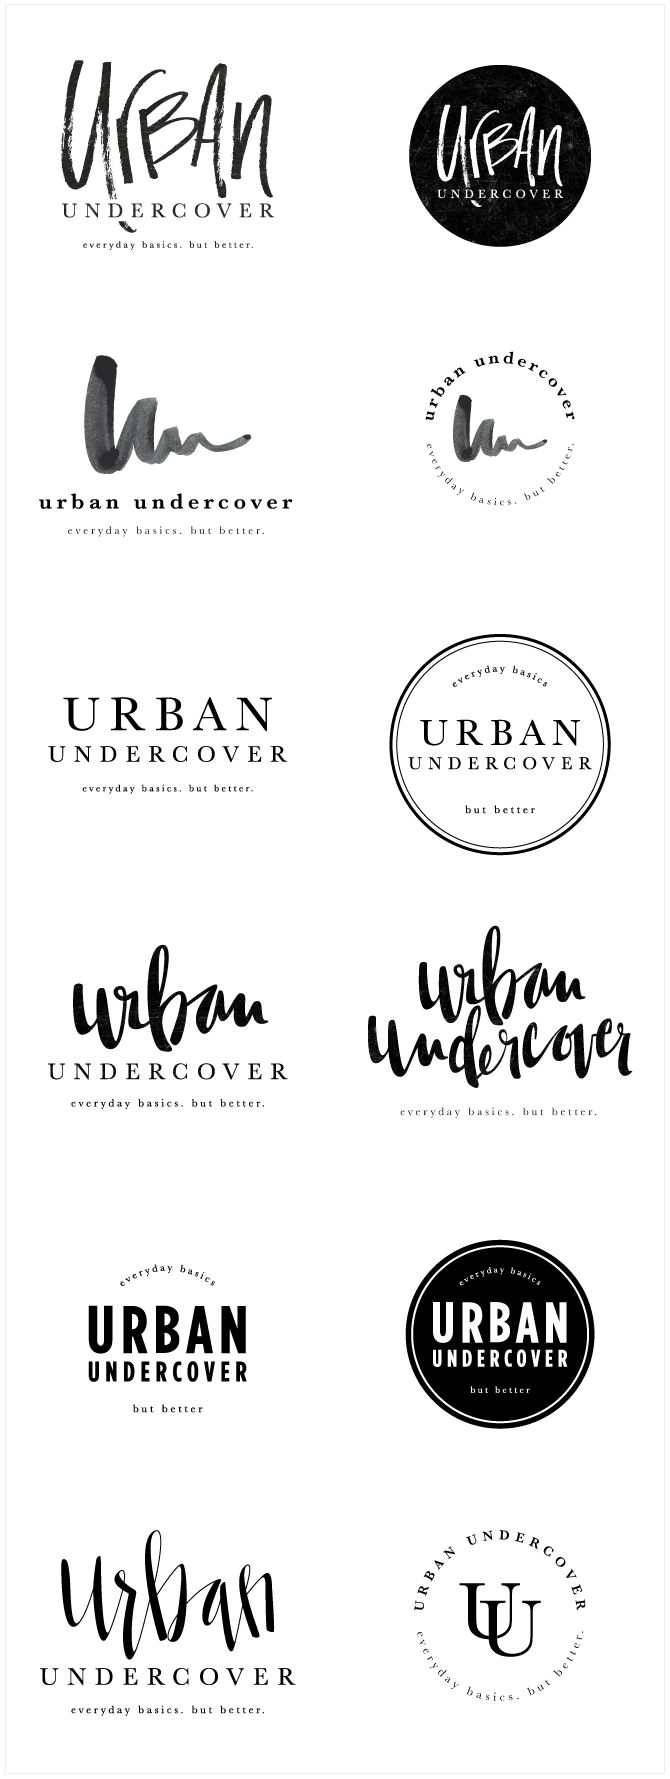 Logo Design Ideas for 5 you will get high quality logo design pngjpeg files creative design creative logo Brand Launch Urban Undercover Salted Ink Design Co Logo Concepts Logo